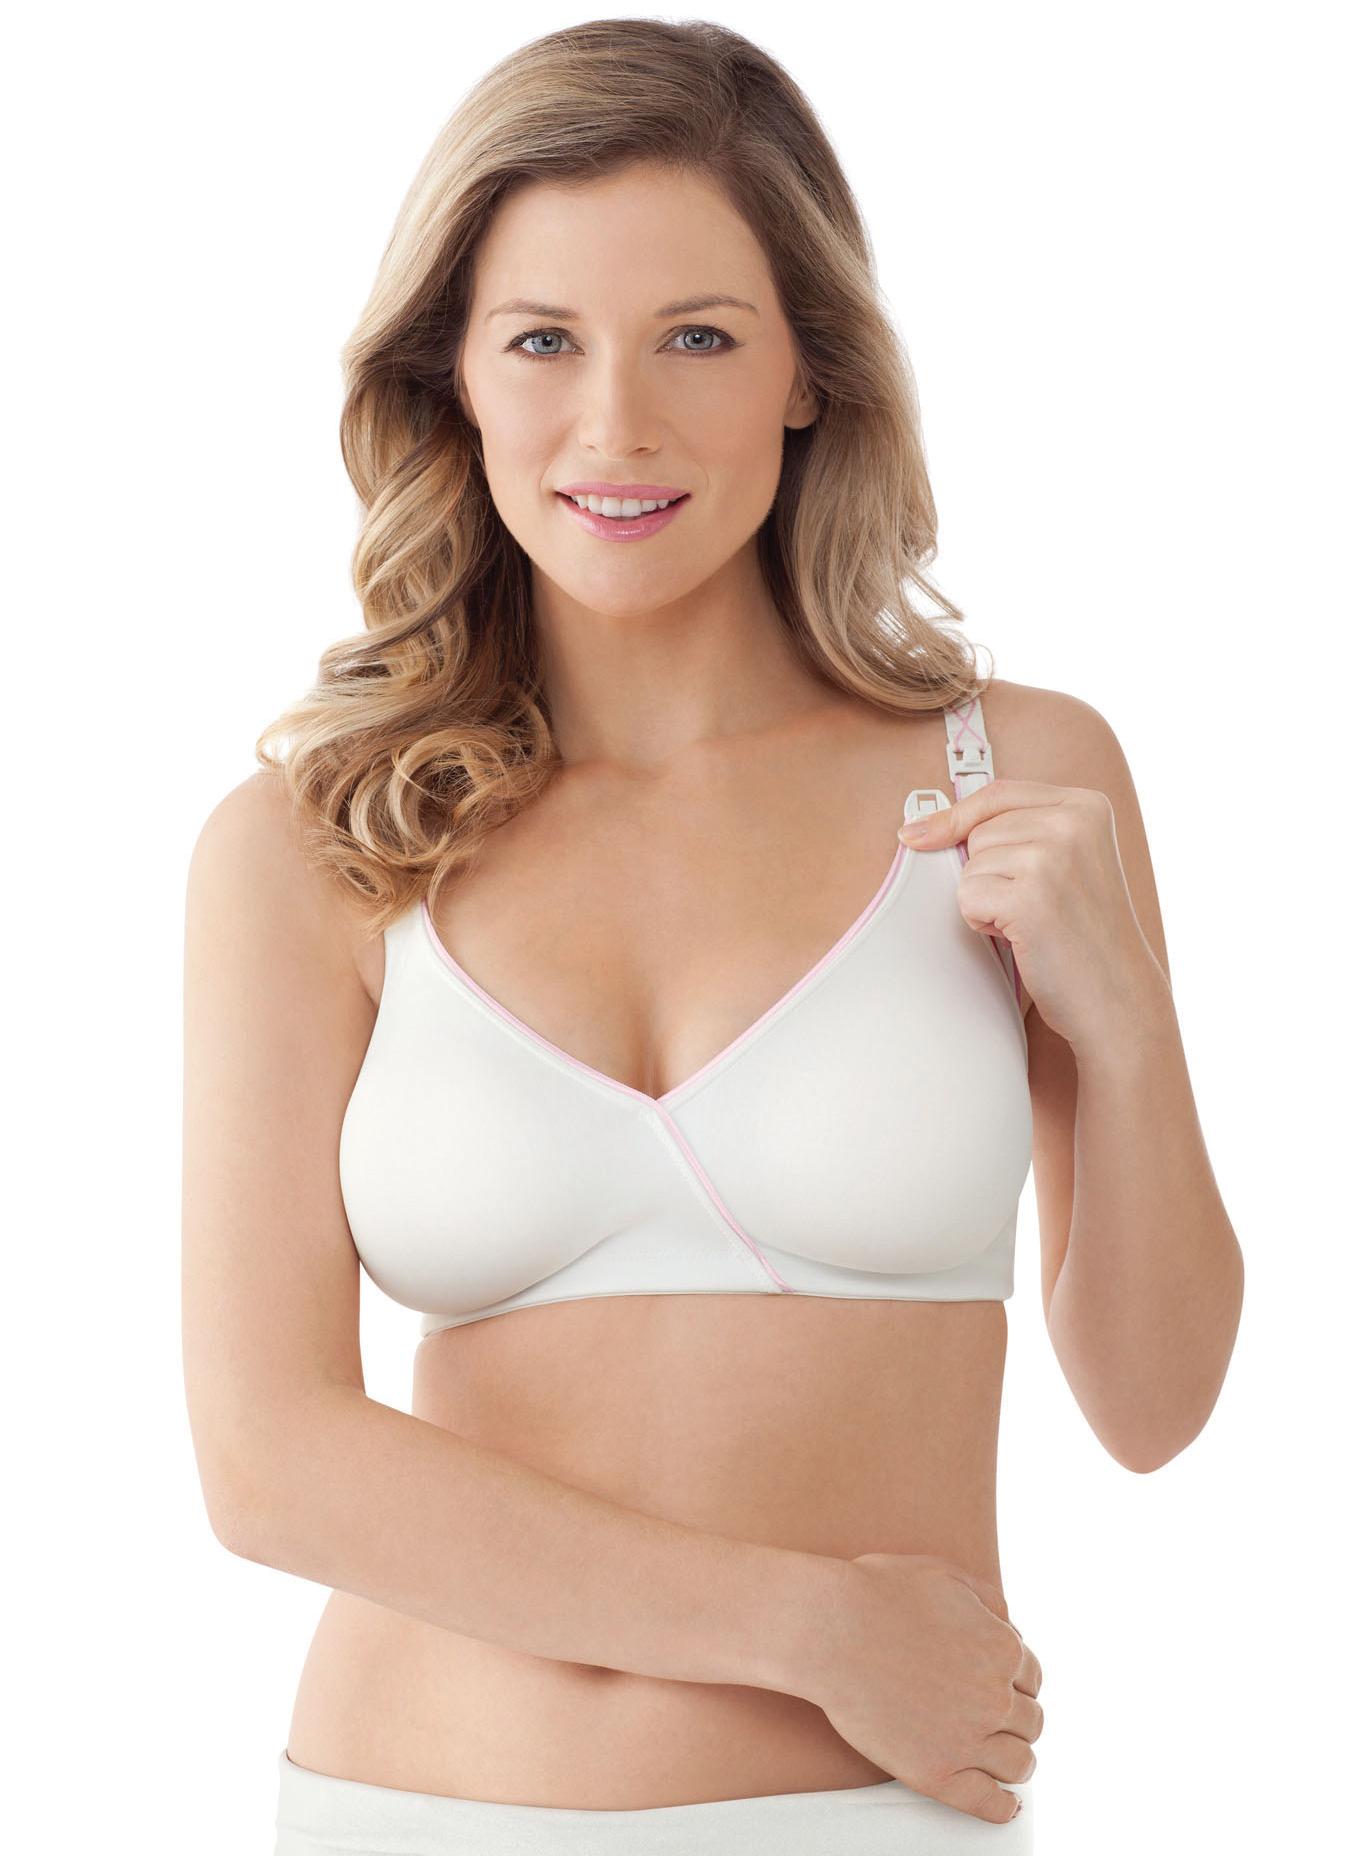 Shop Target for Nursing Bras you will love at great low prices. Spend $35+ or use your REDcard & get free 2-day shipping on most items or same-day pick-up in store.